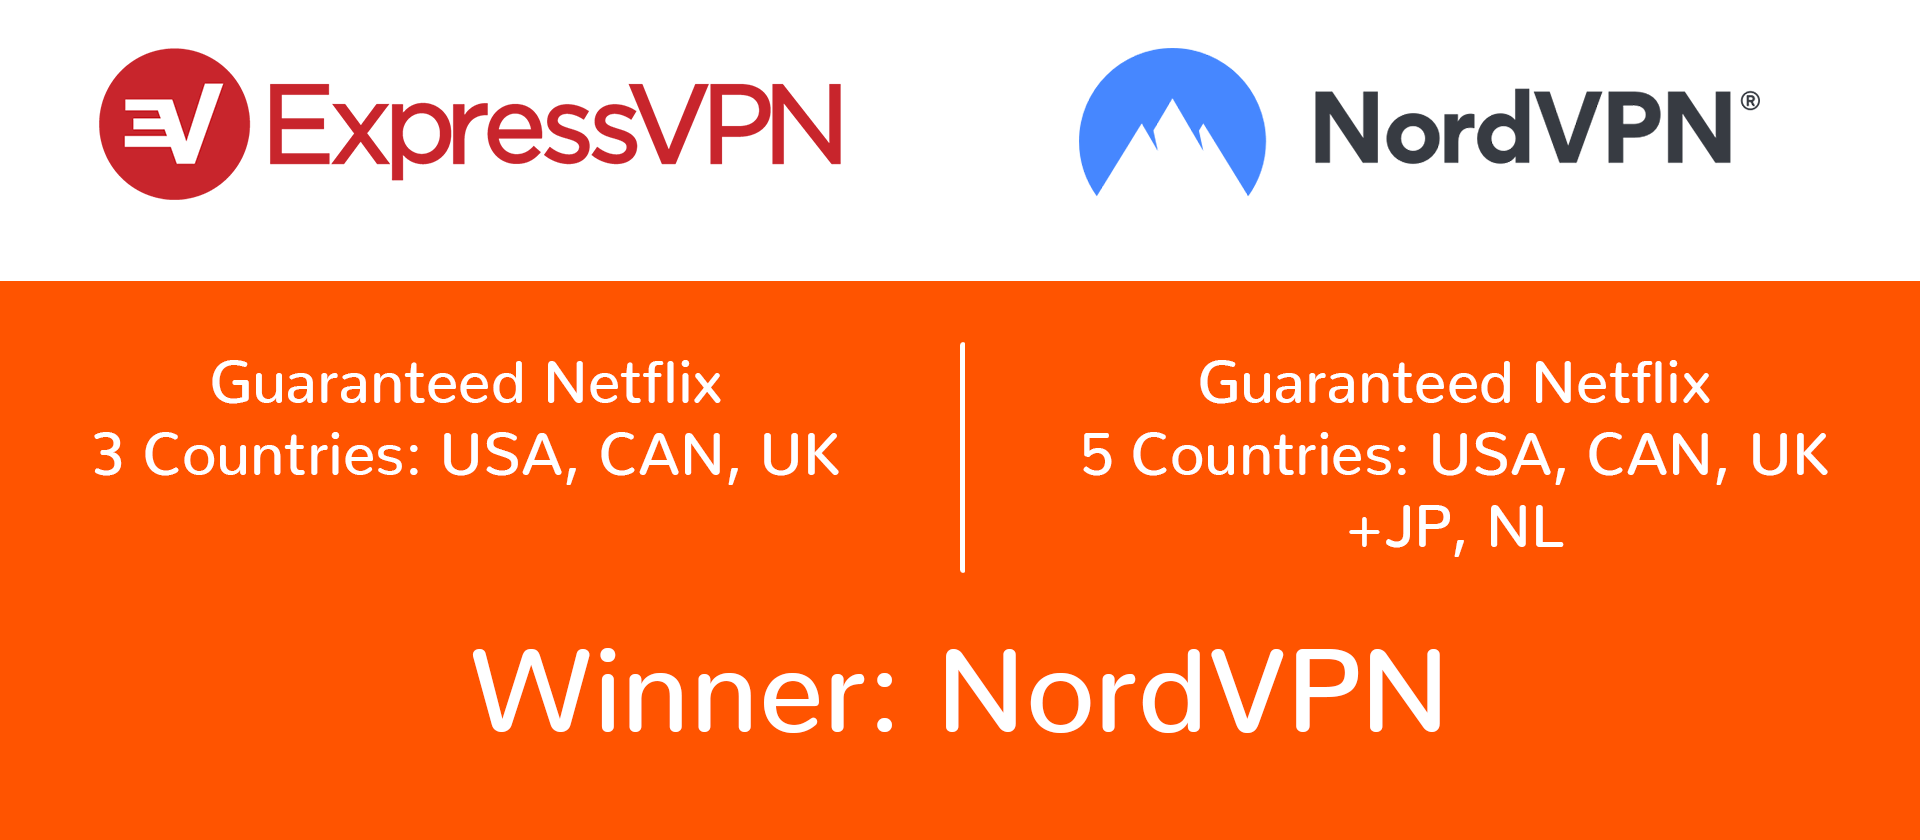 netflix comparison between nordvpn and expressvpn